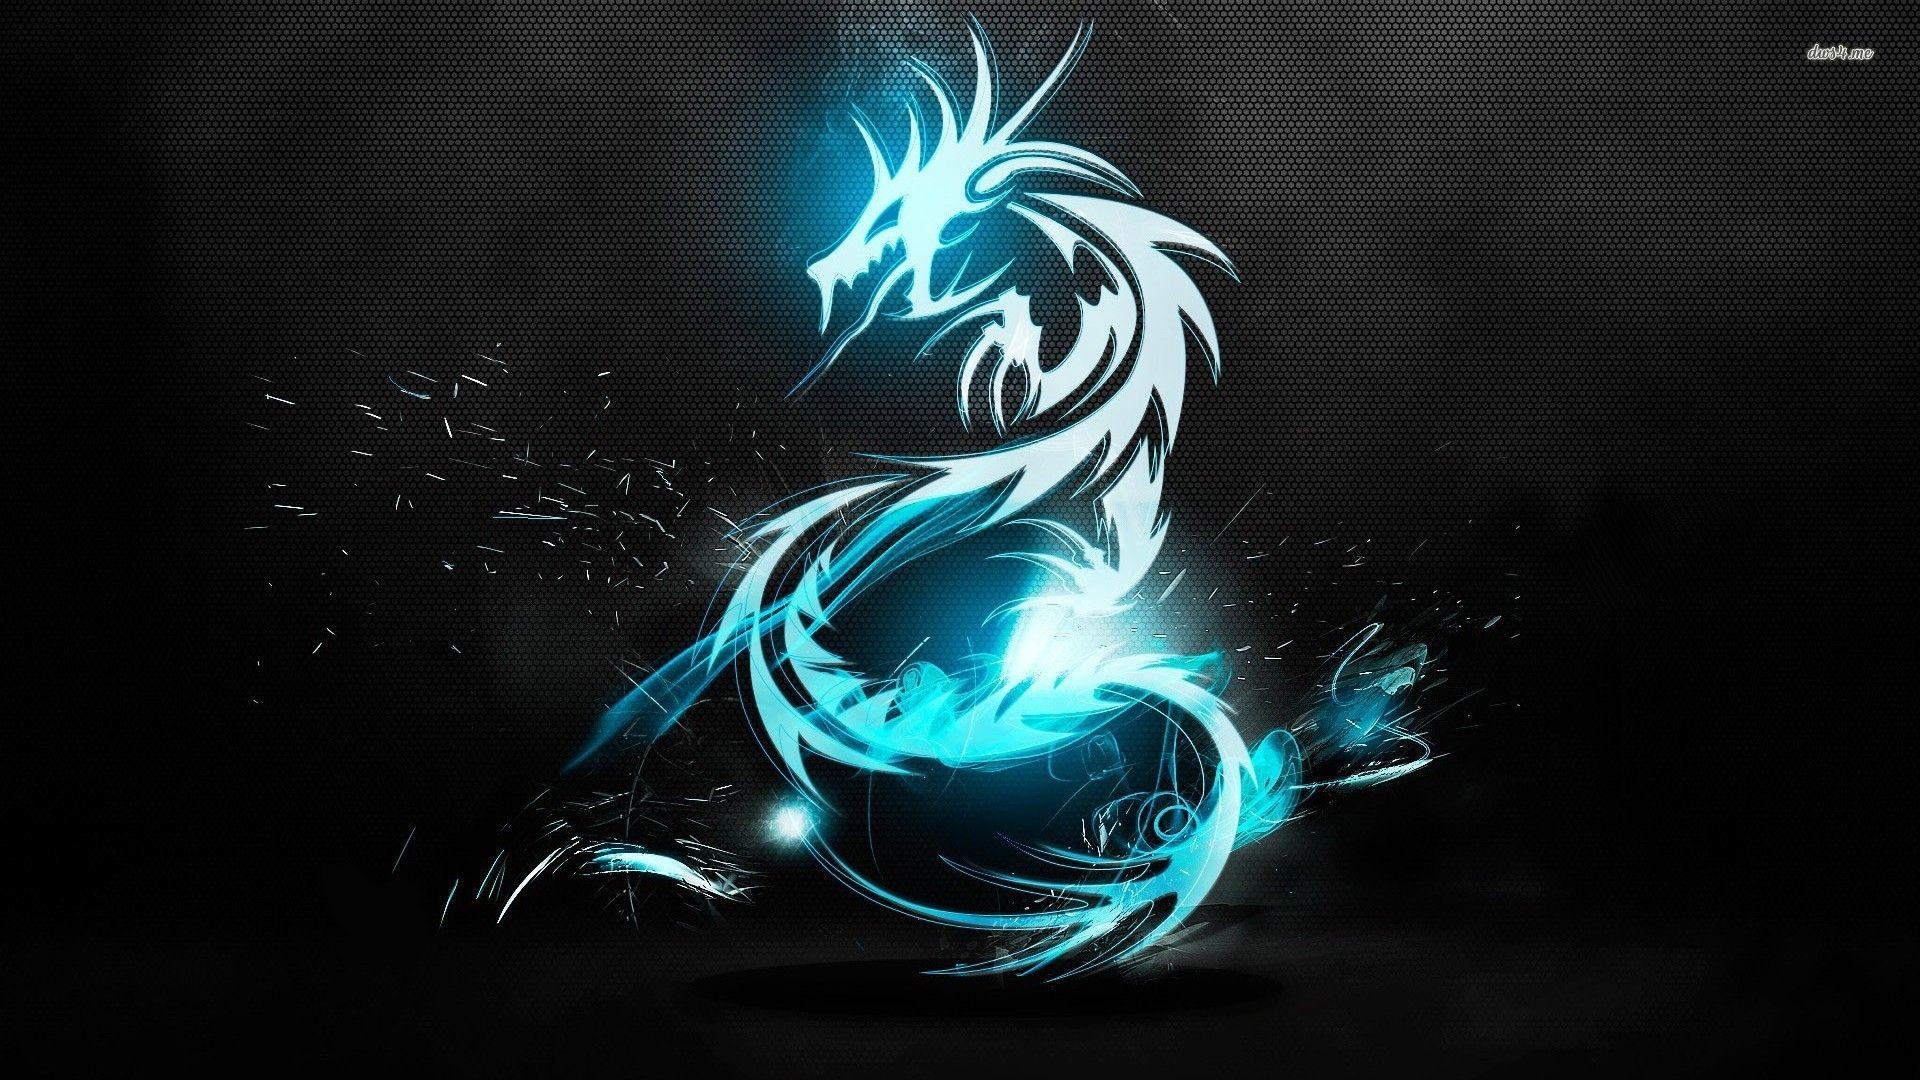 Msi wallpaper hd wallpapersafari – Hd Dragon Wallpapers 1920  Wallpapersafari. Download